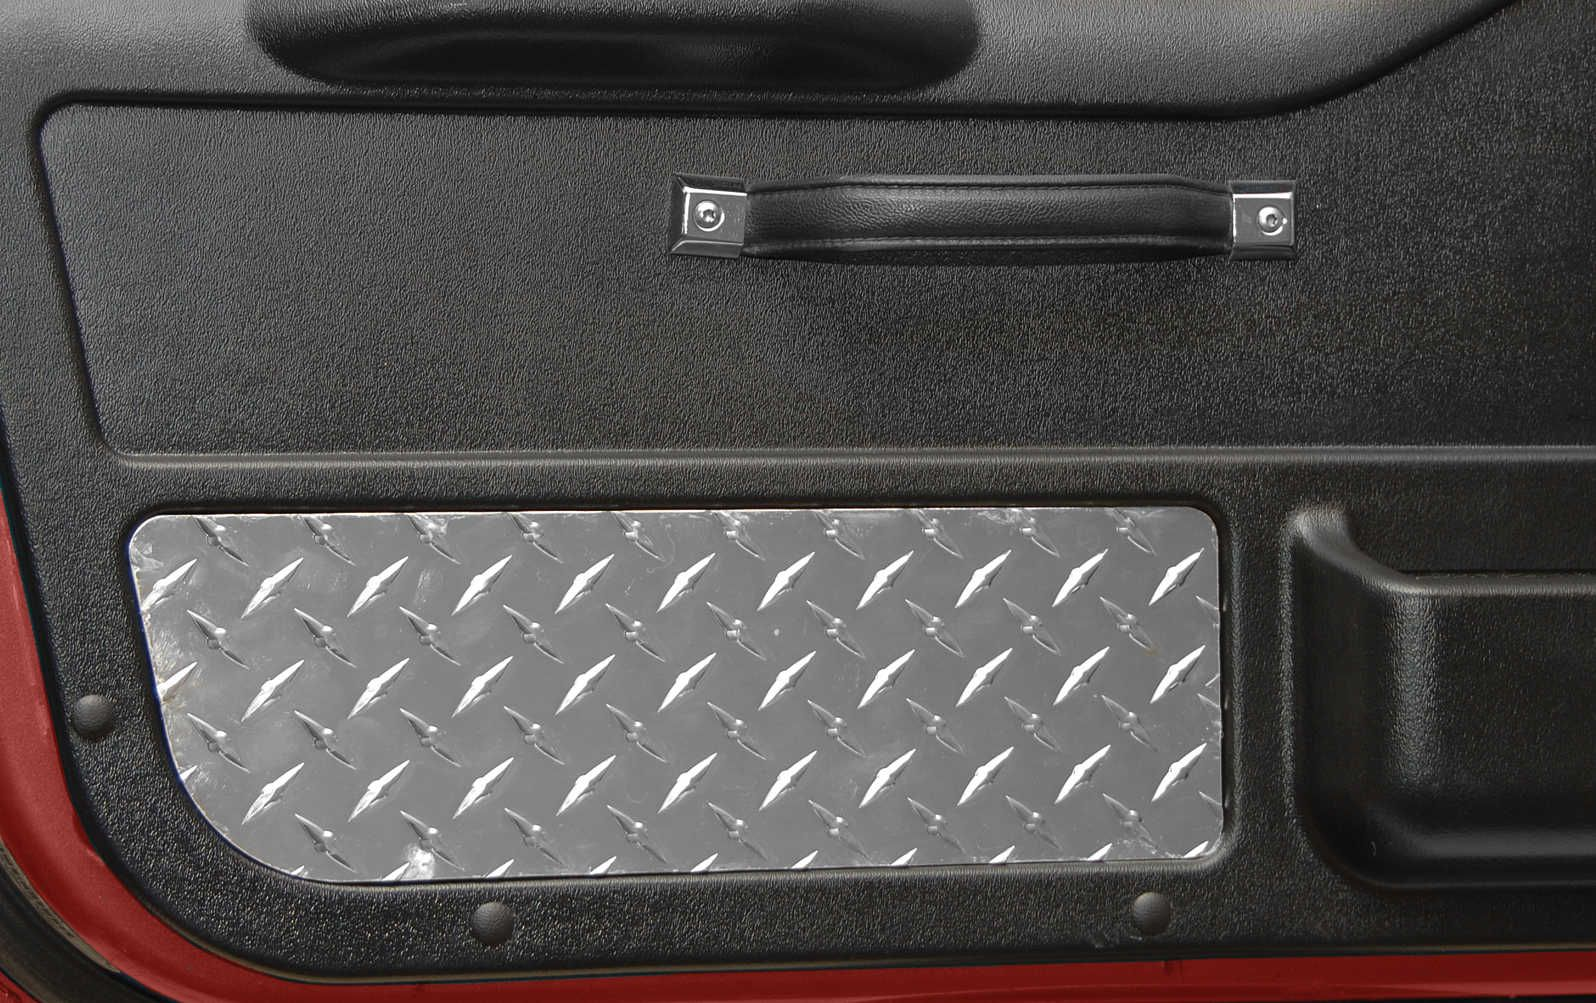 Gauge Works 90 001 Replacement Door Panels With Diamond Plate Inserts For 87 95 Jeep Wrangler Yj 1 2 Steel Doors Diamond Plate Jeep Wrangler Yj Jeep